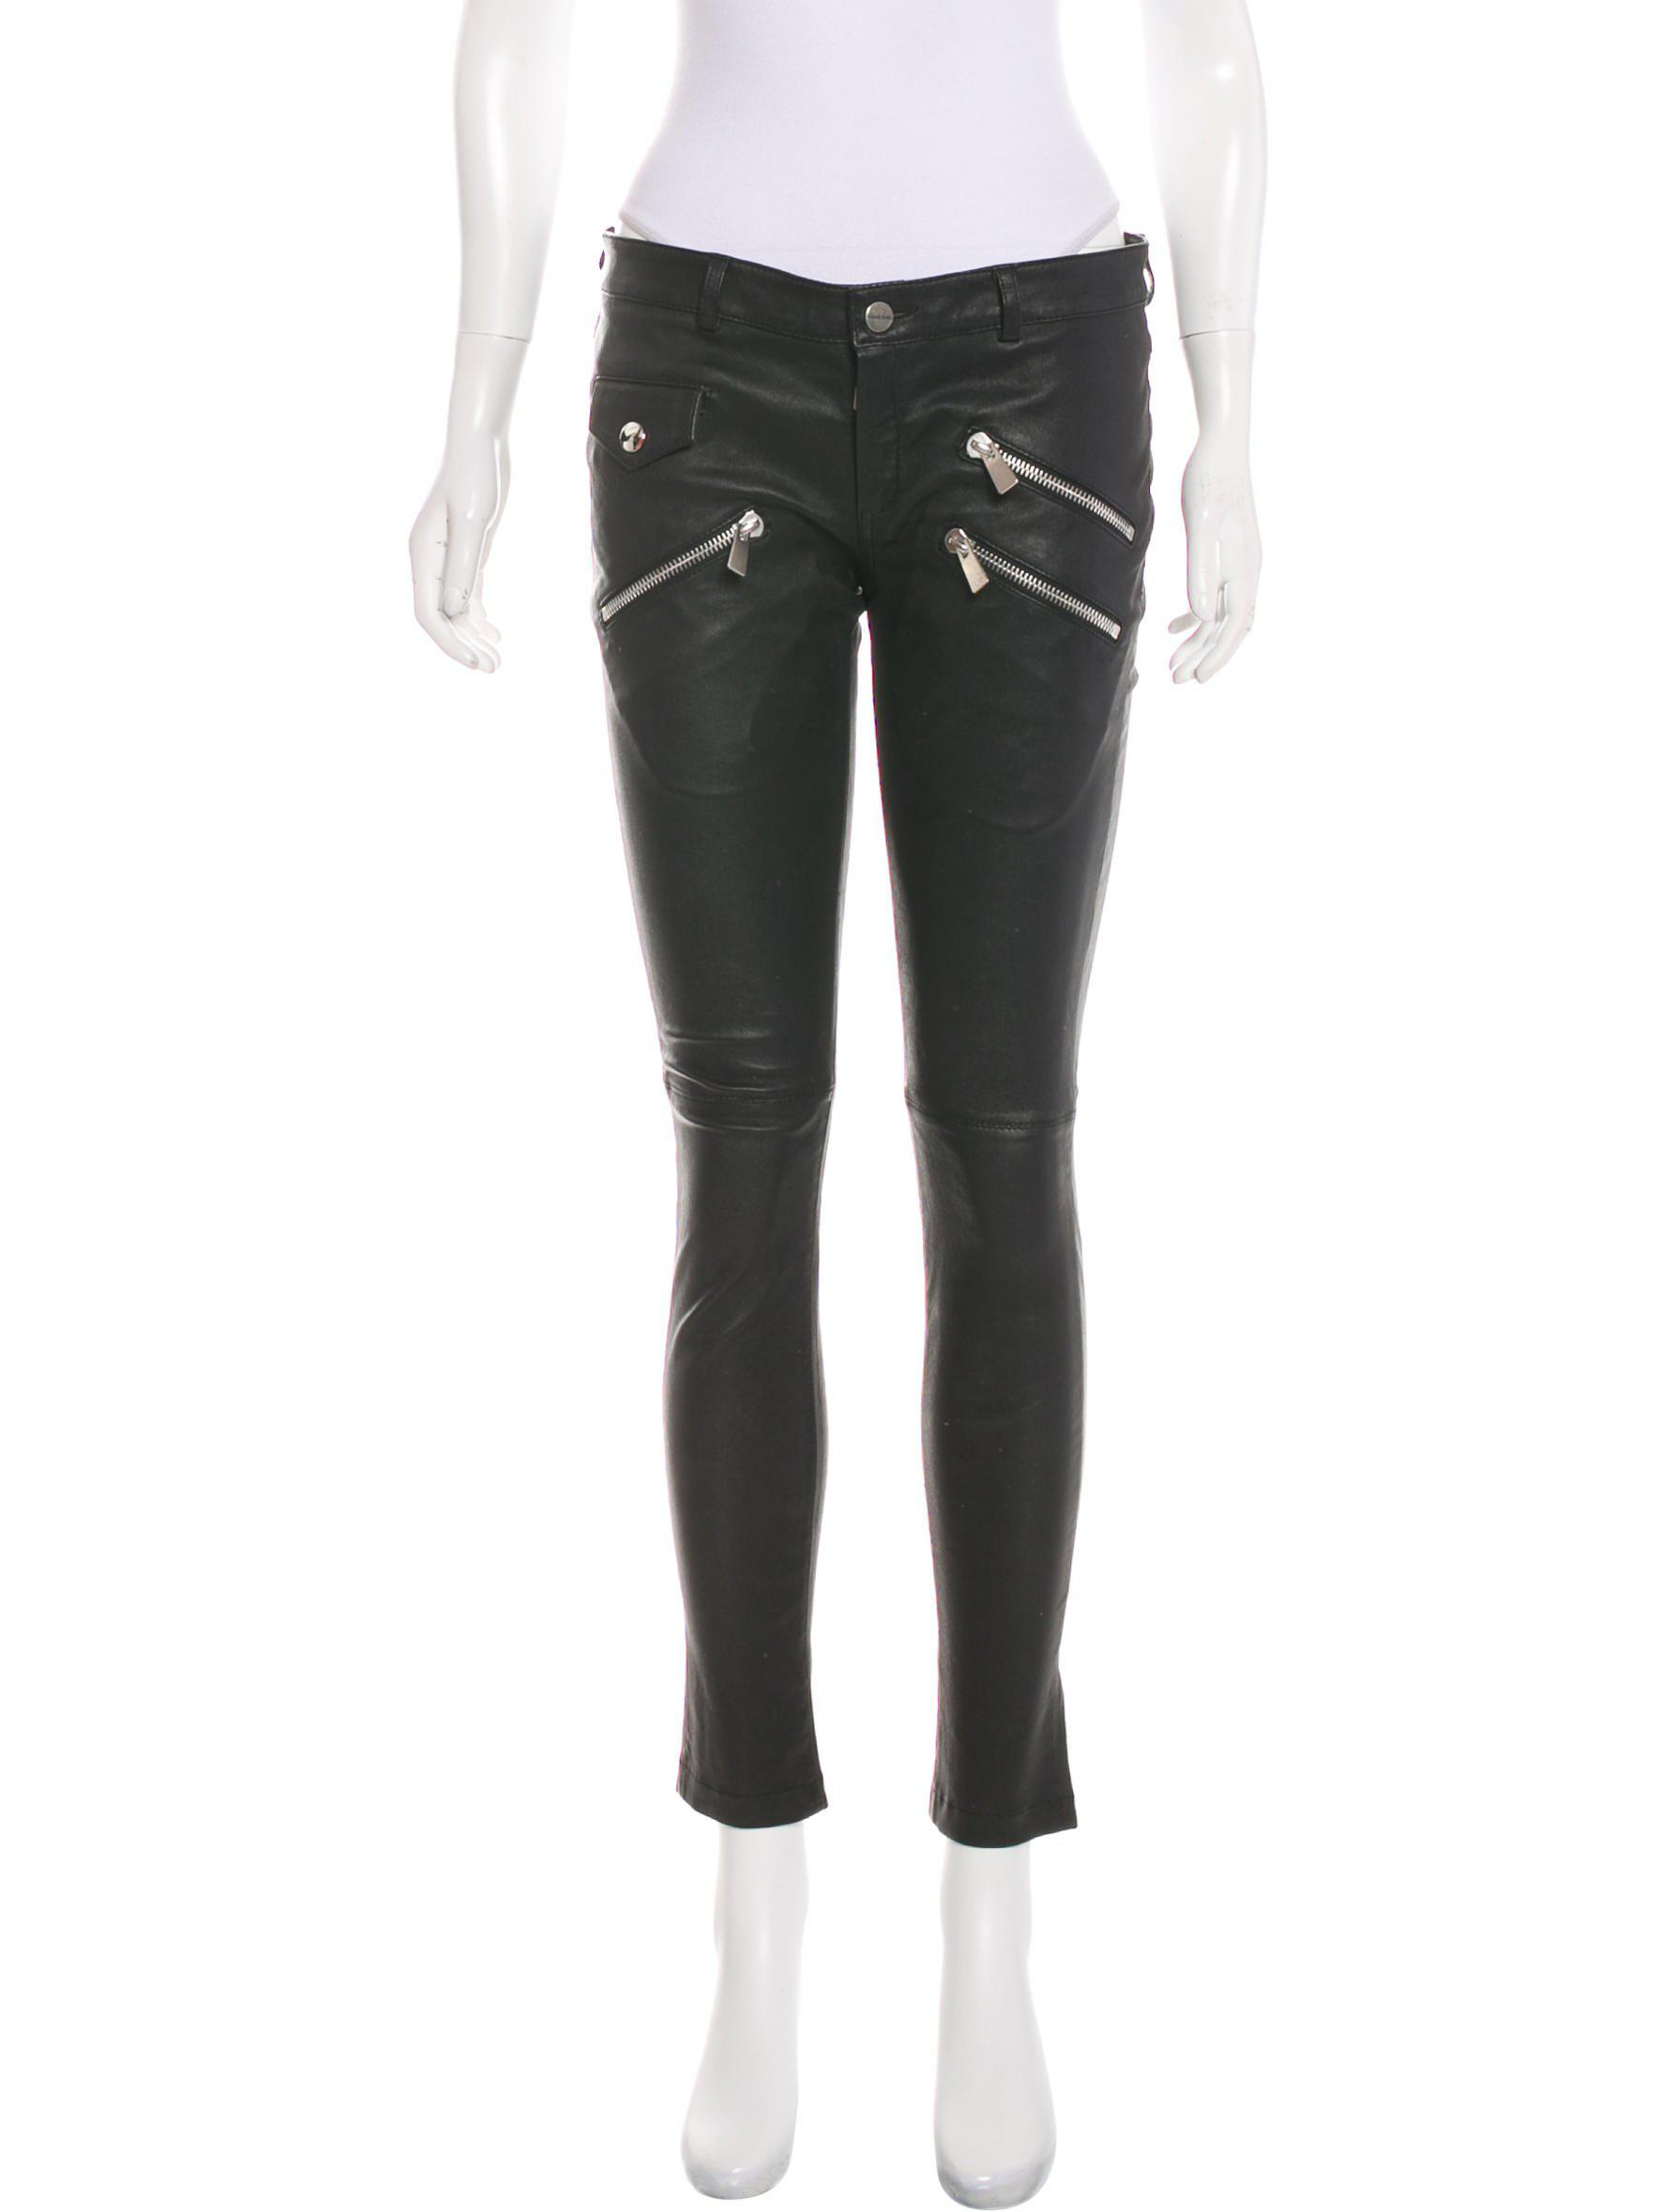 726aefa3d9dffe Lyst - Anine Bing Mid-rise Leather Pants in Black